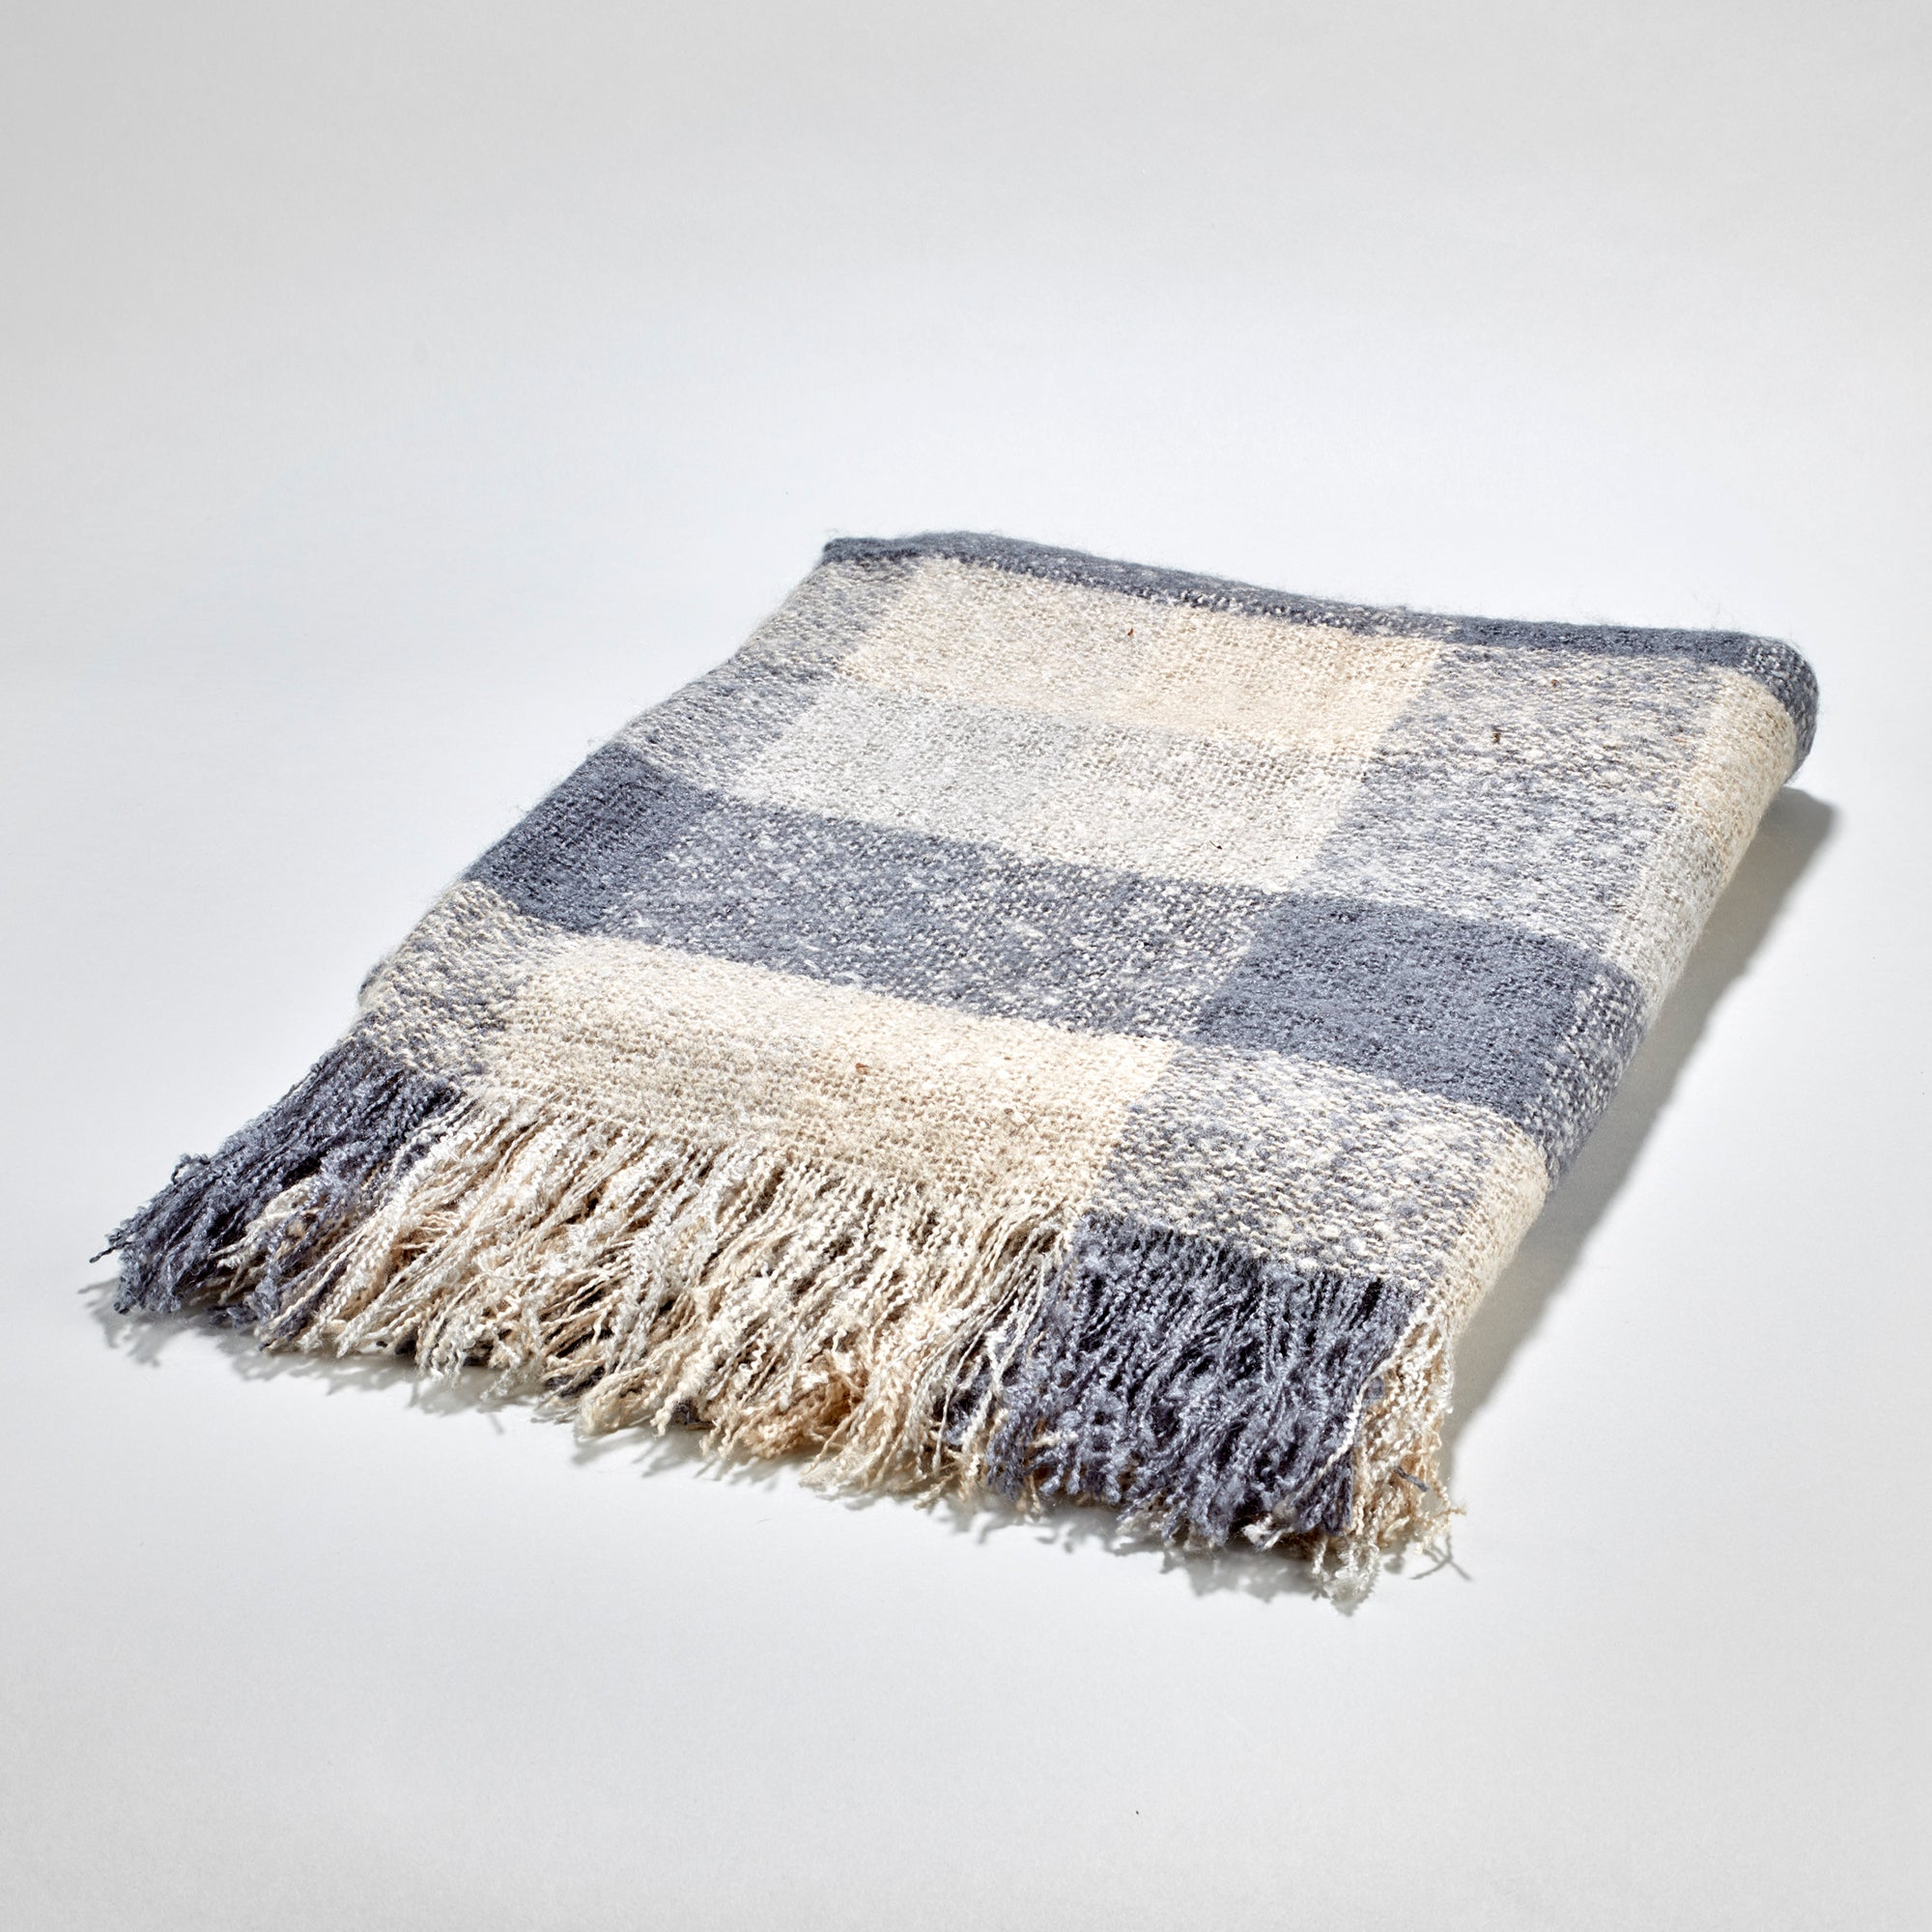 James Throw - Ivory & Light Charcoal Grey